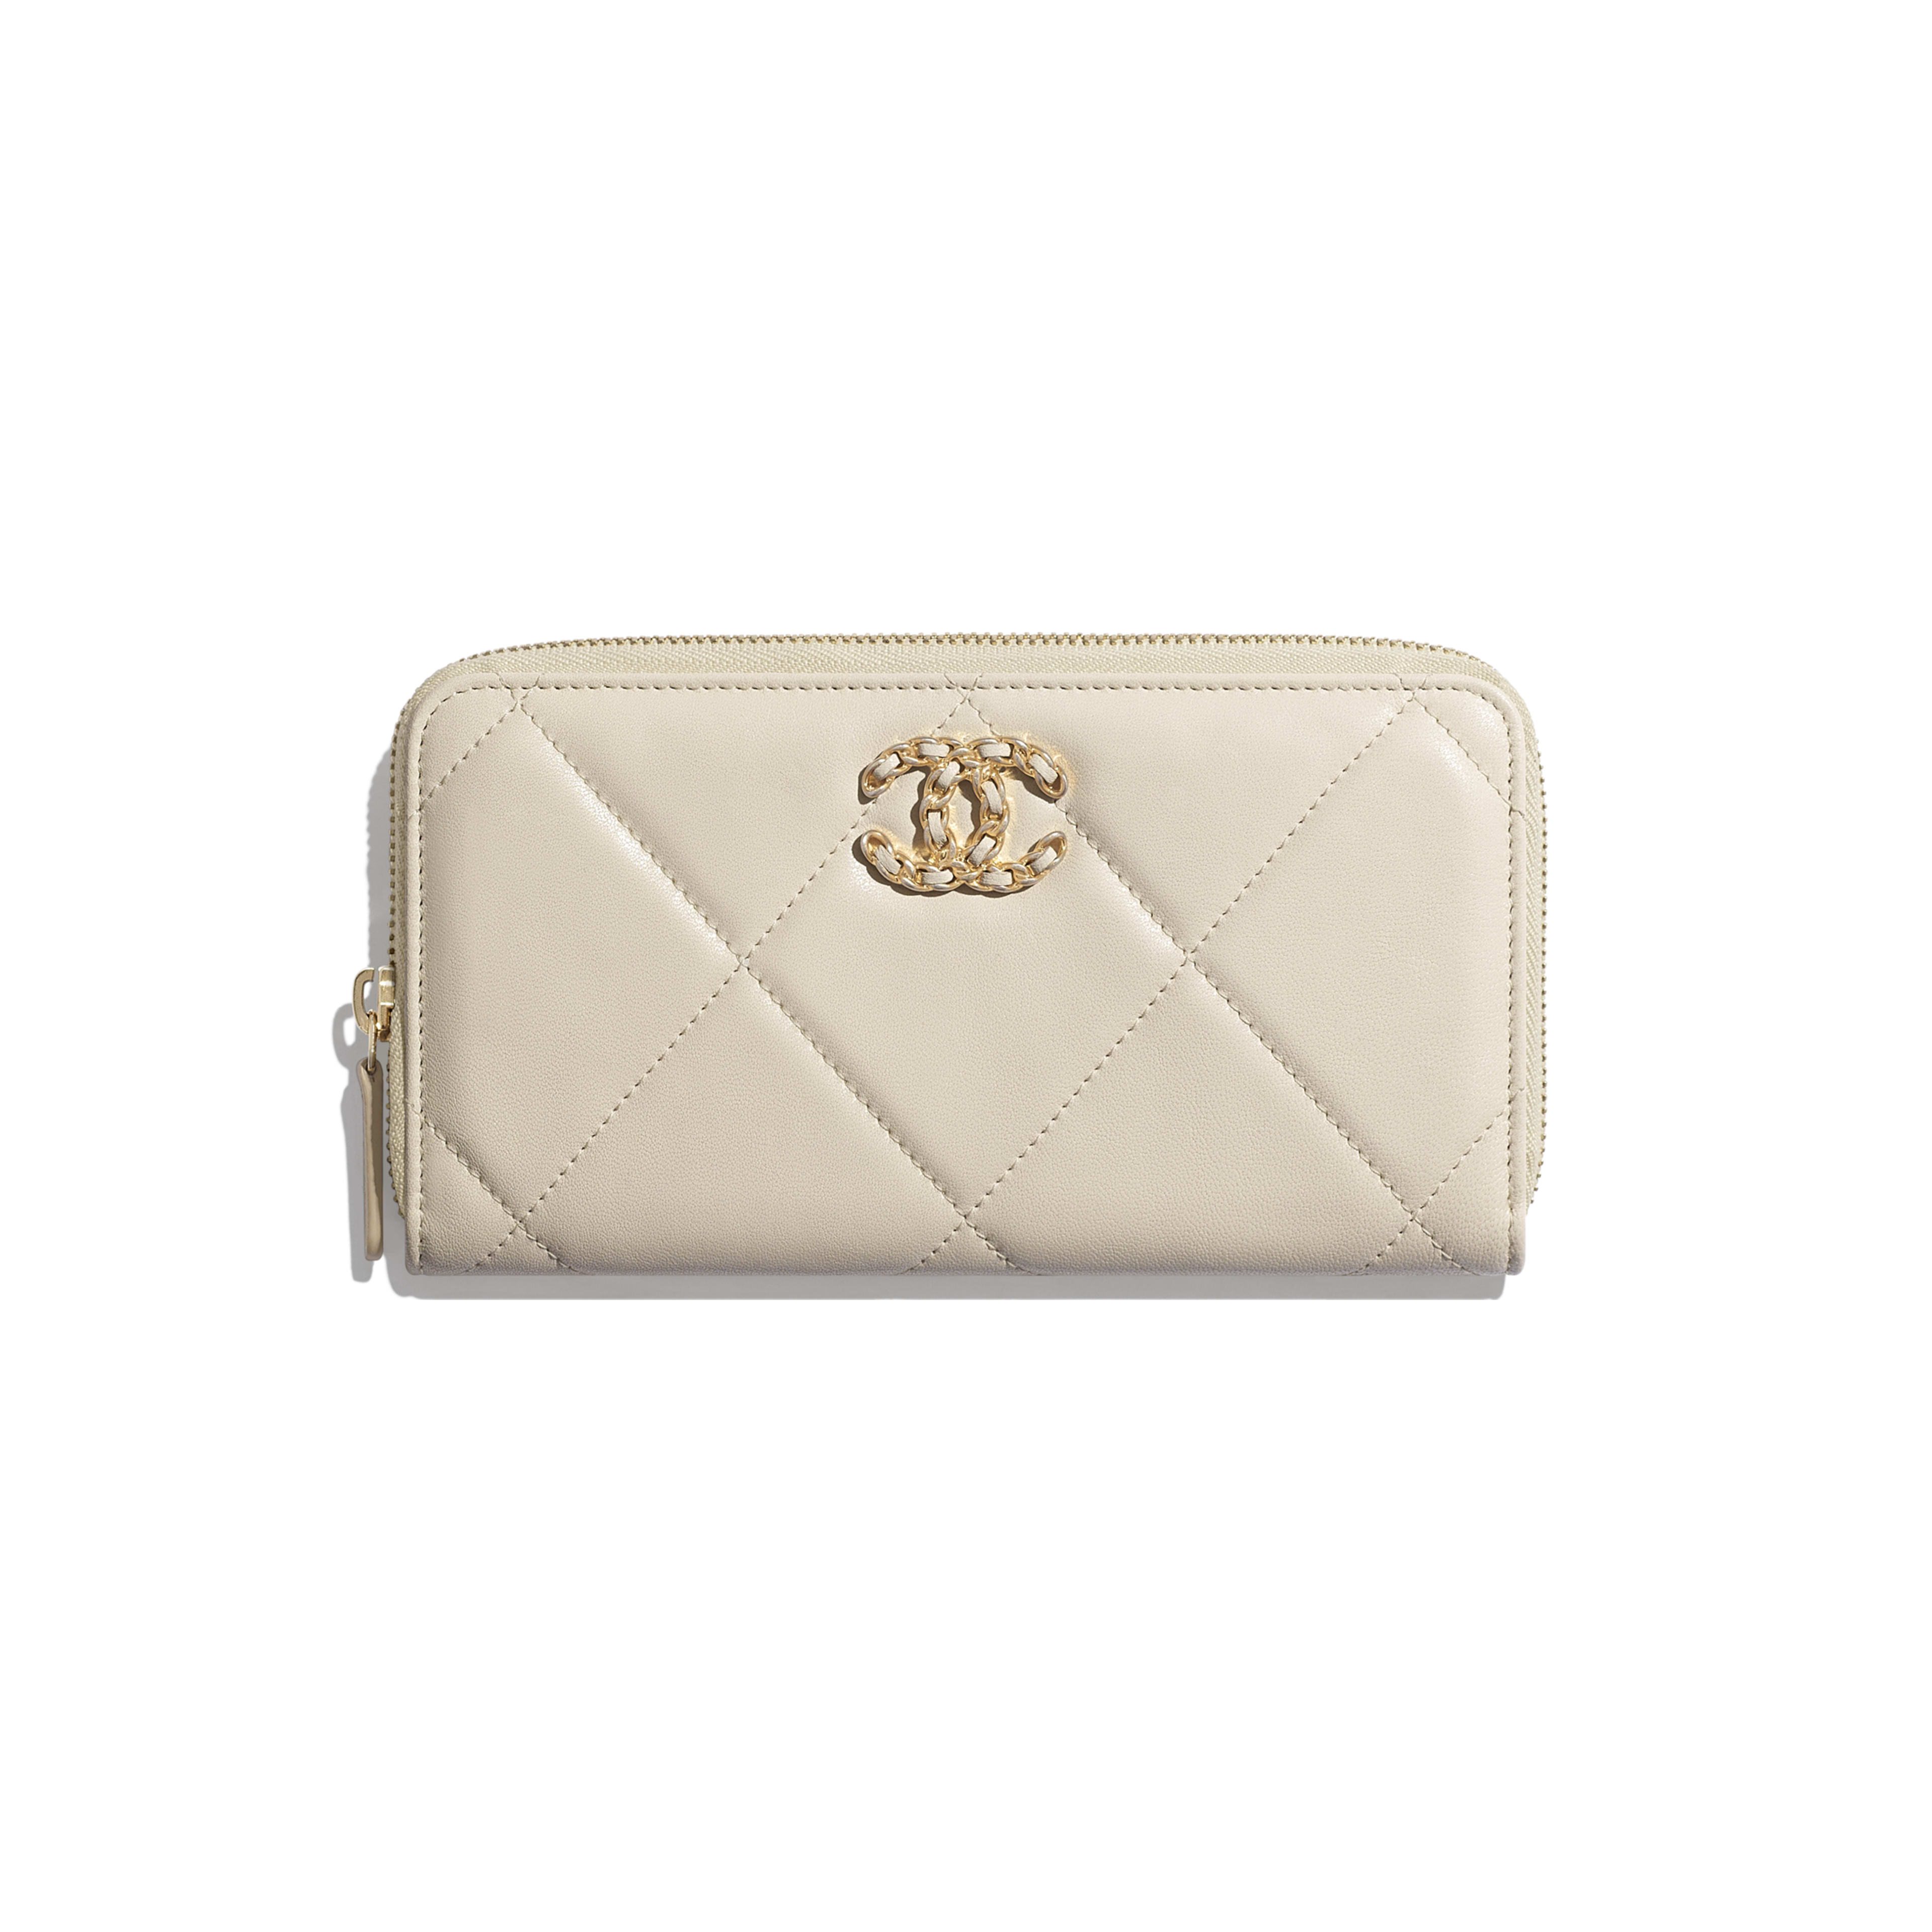 CHANEL 19 Long Zipped Wallet - Light Beige - Lambskin, Gold-Tone, Silver-Tone & Ruthenium-Finish Metal - Default view - see full sized version